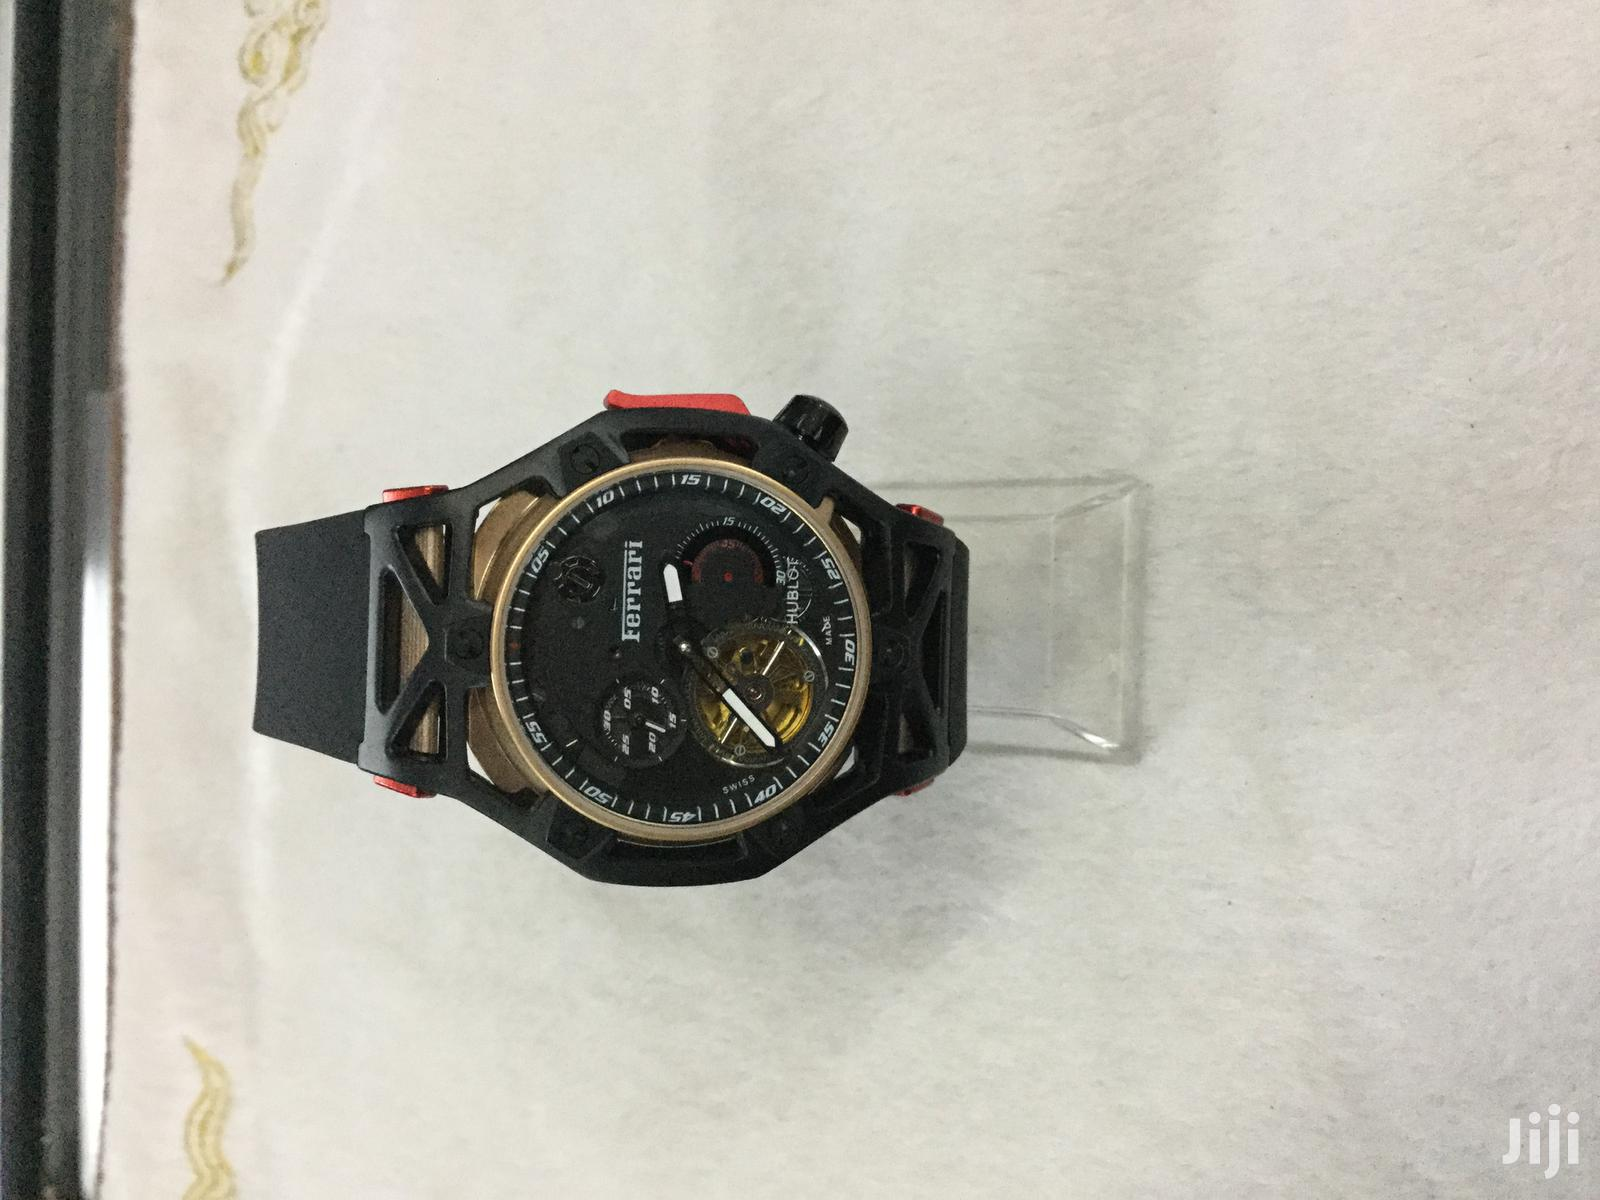 Archive: Hublot Ferrari Mechanical Watch in Stock Pay on Delivery